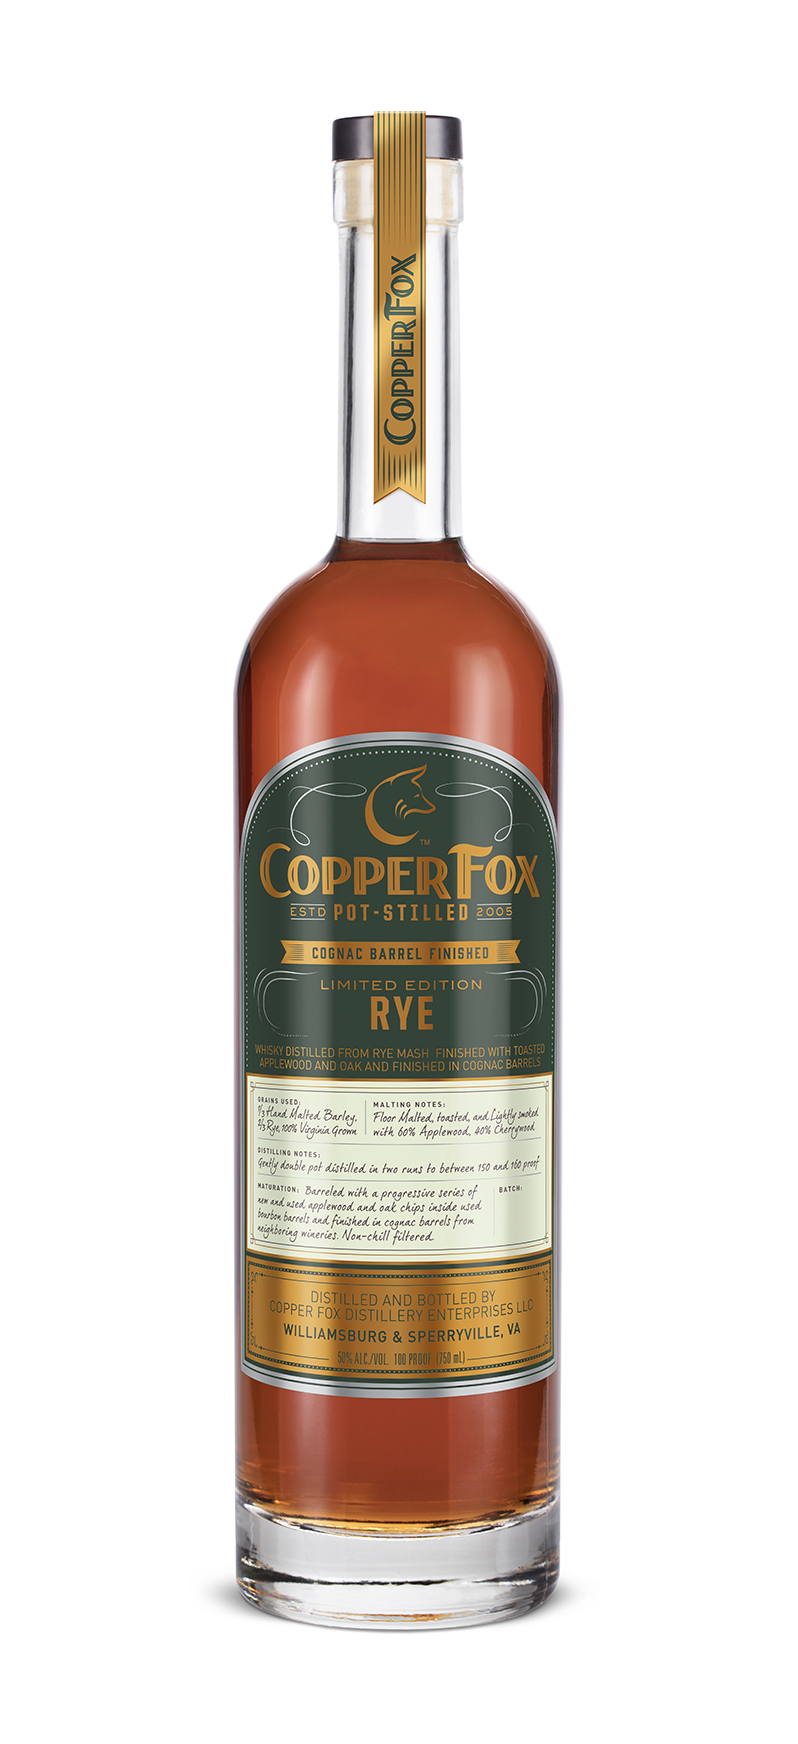 copper fox cognac Barrel Finish limited edition Rye - Detailed tasting notes to come.‹ Previous Back to Gallery Next ›